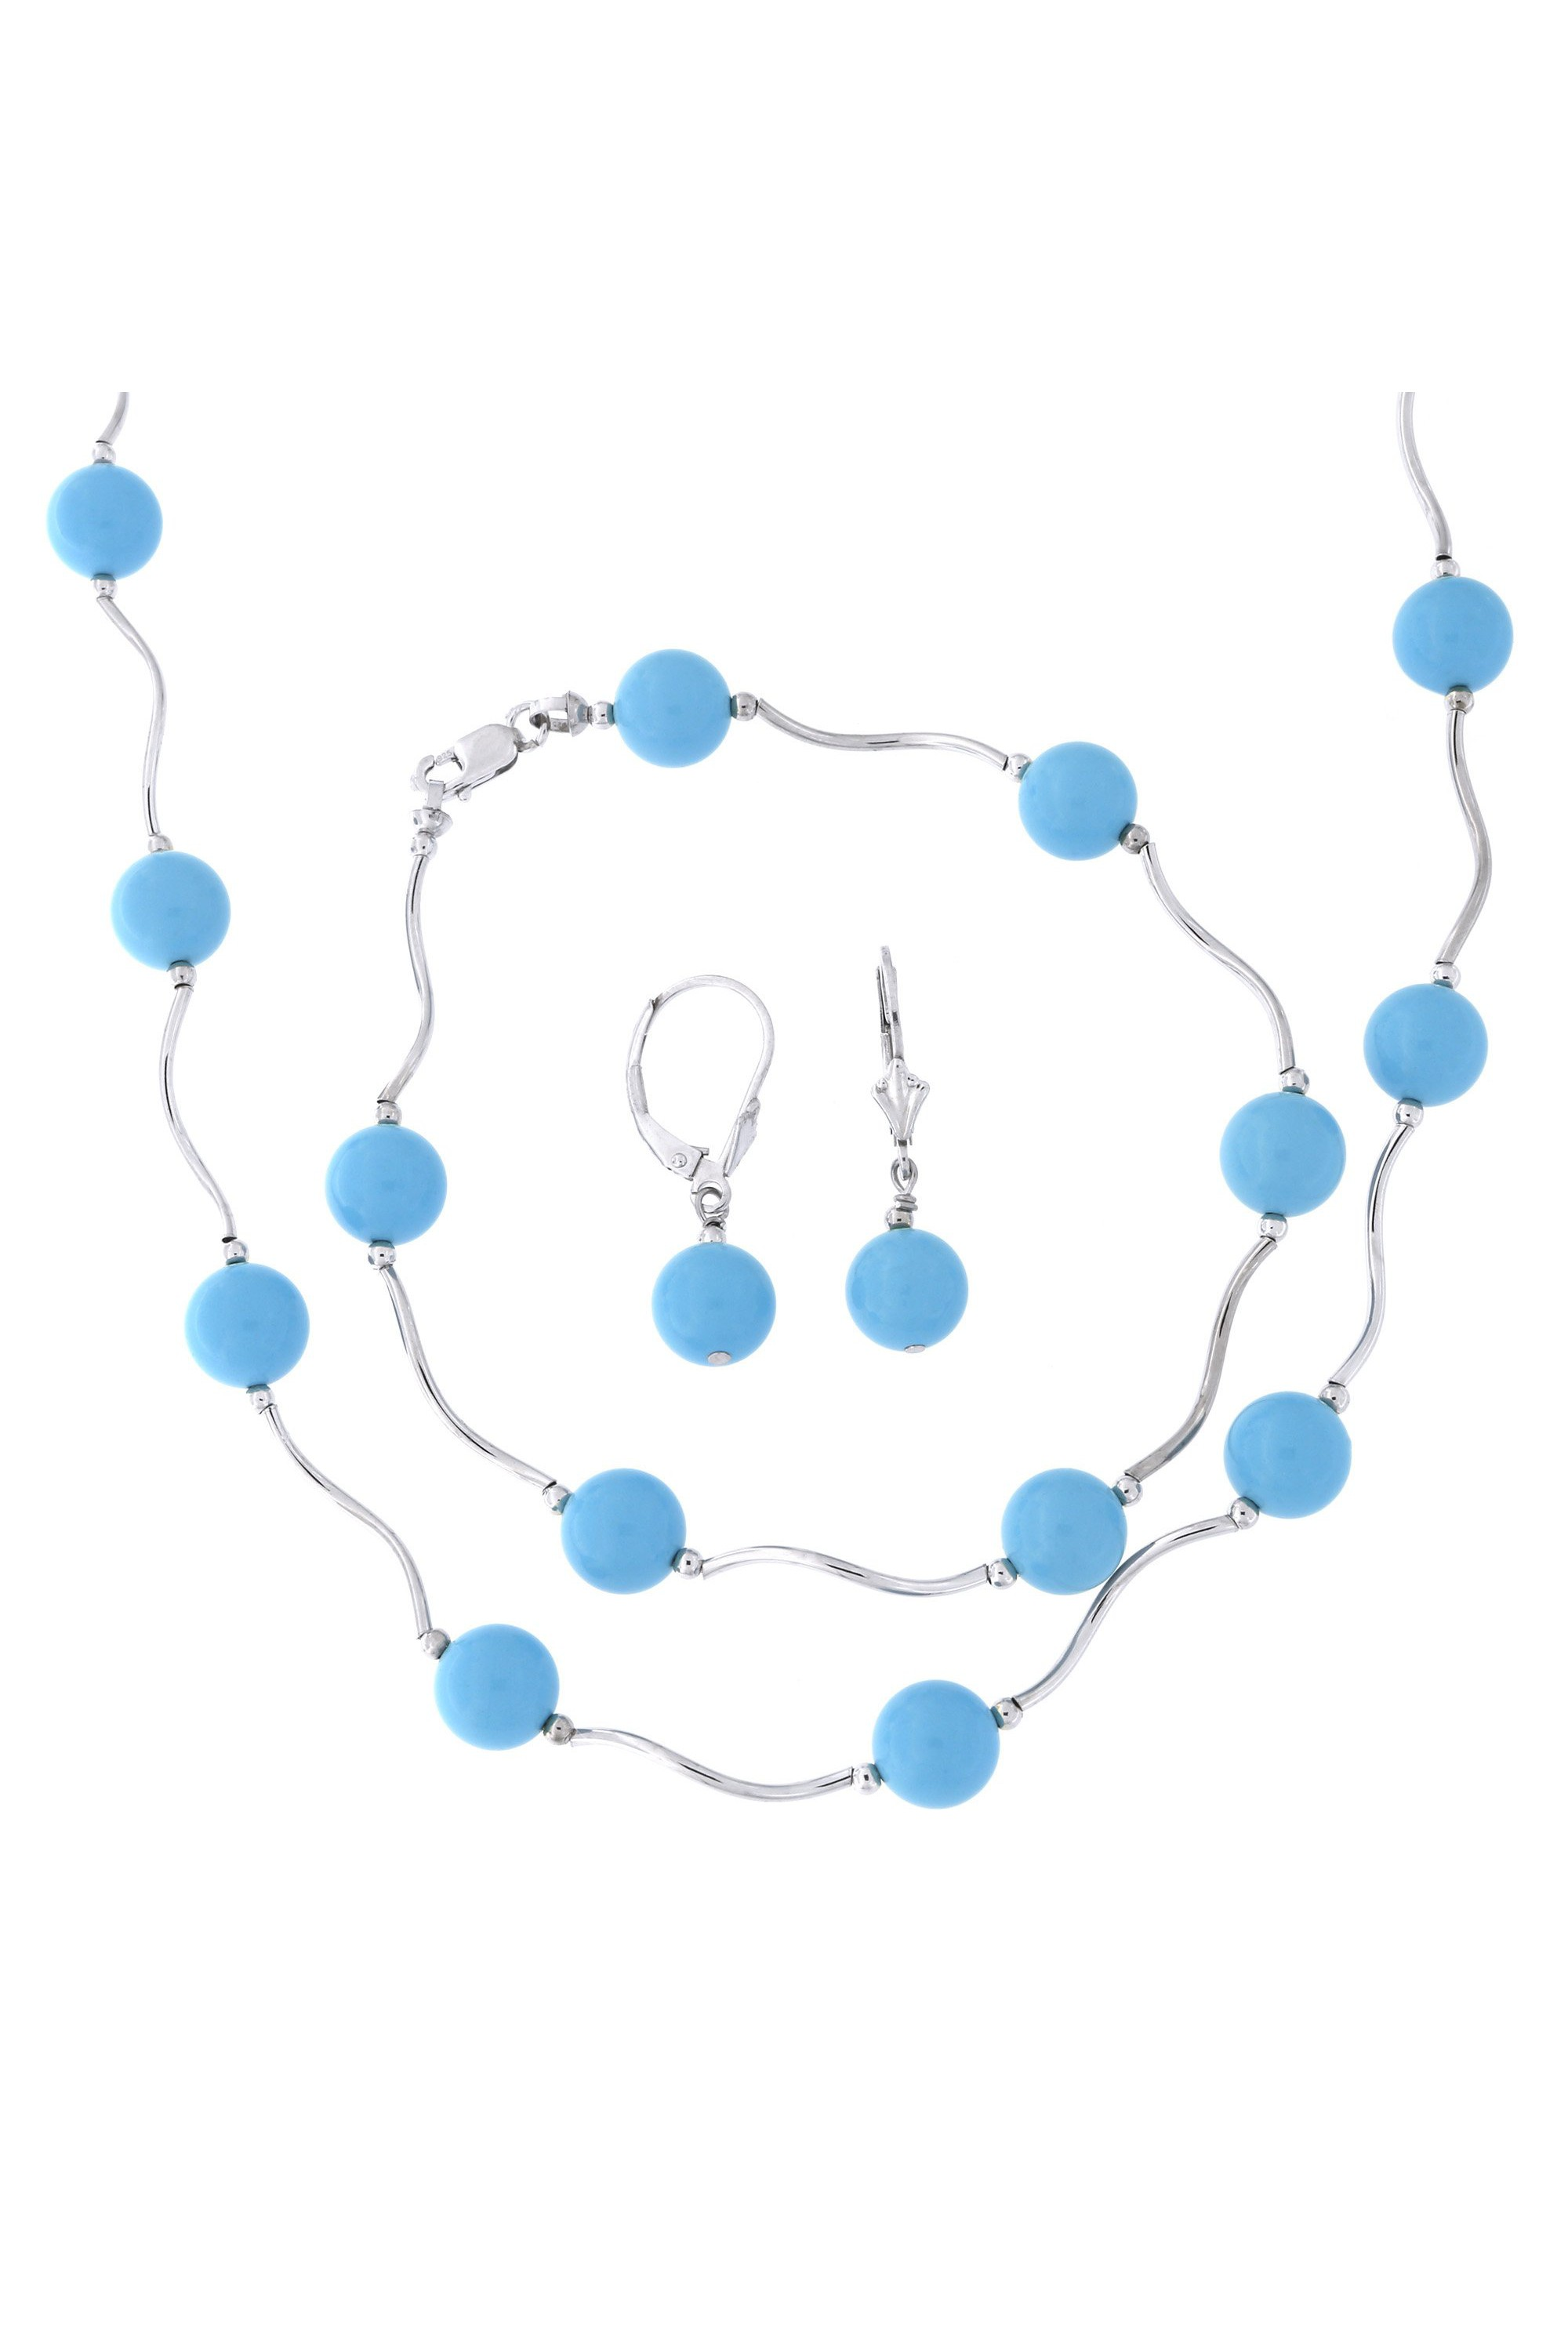 Sterling Silver Rhodium Plated 8mm Simulated Turquoise Station Necklace, Earrings and Bracelet Set by